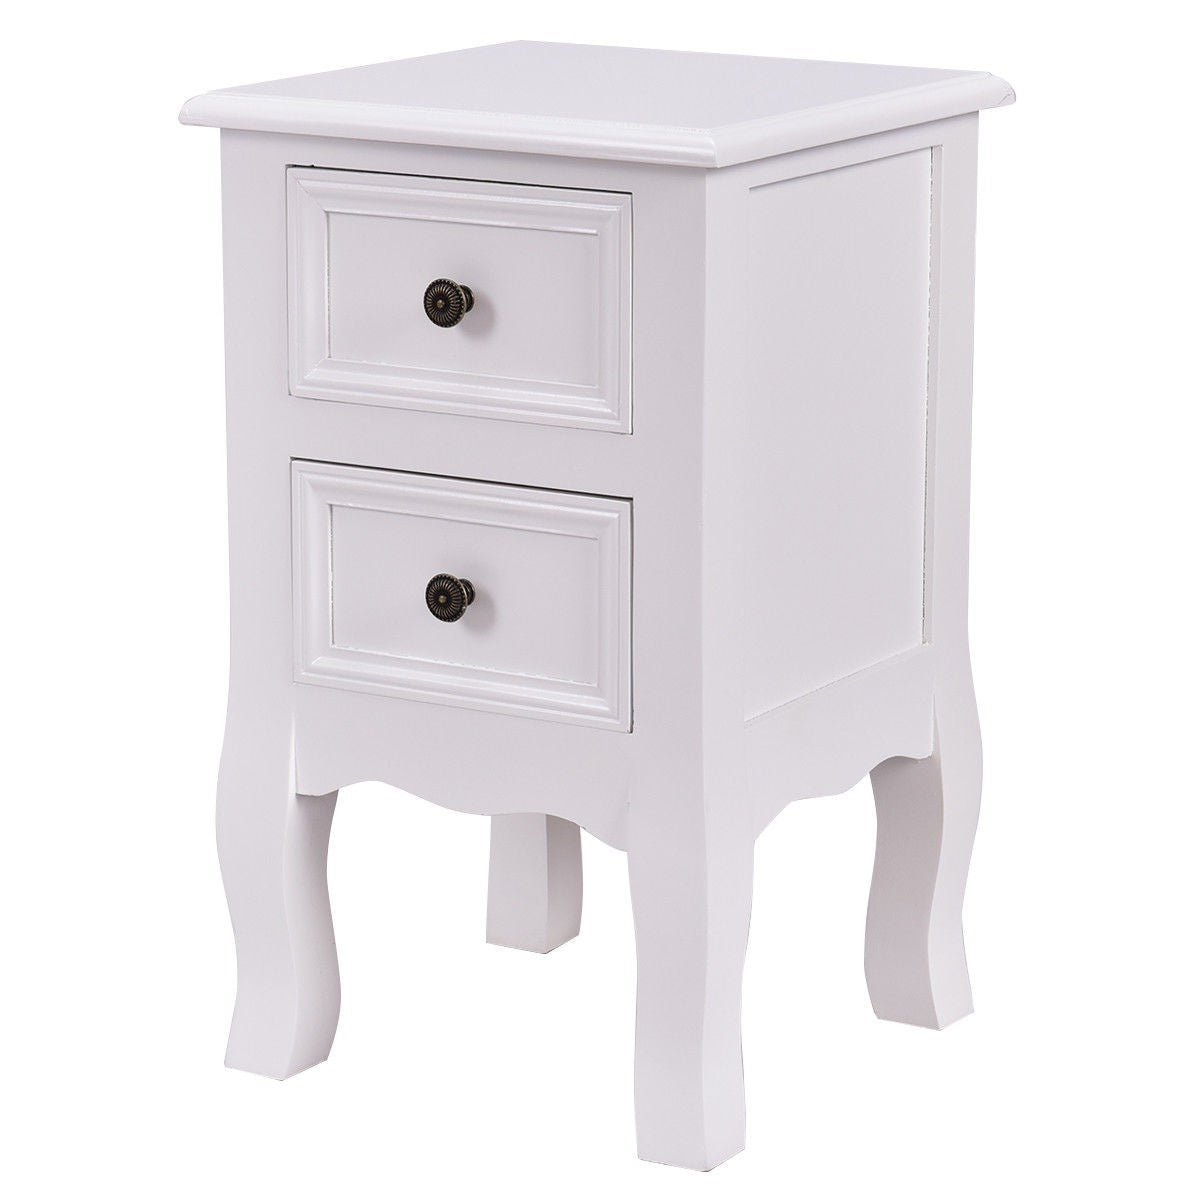 White Wooden 2-Drawer Accent End Table Nightstand